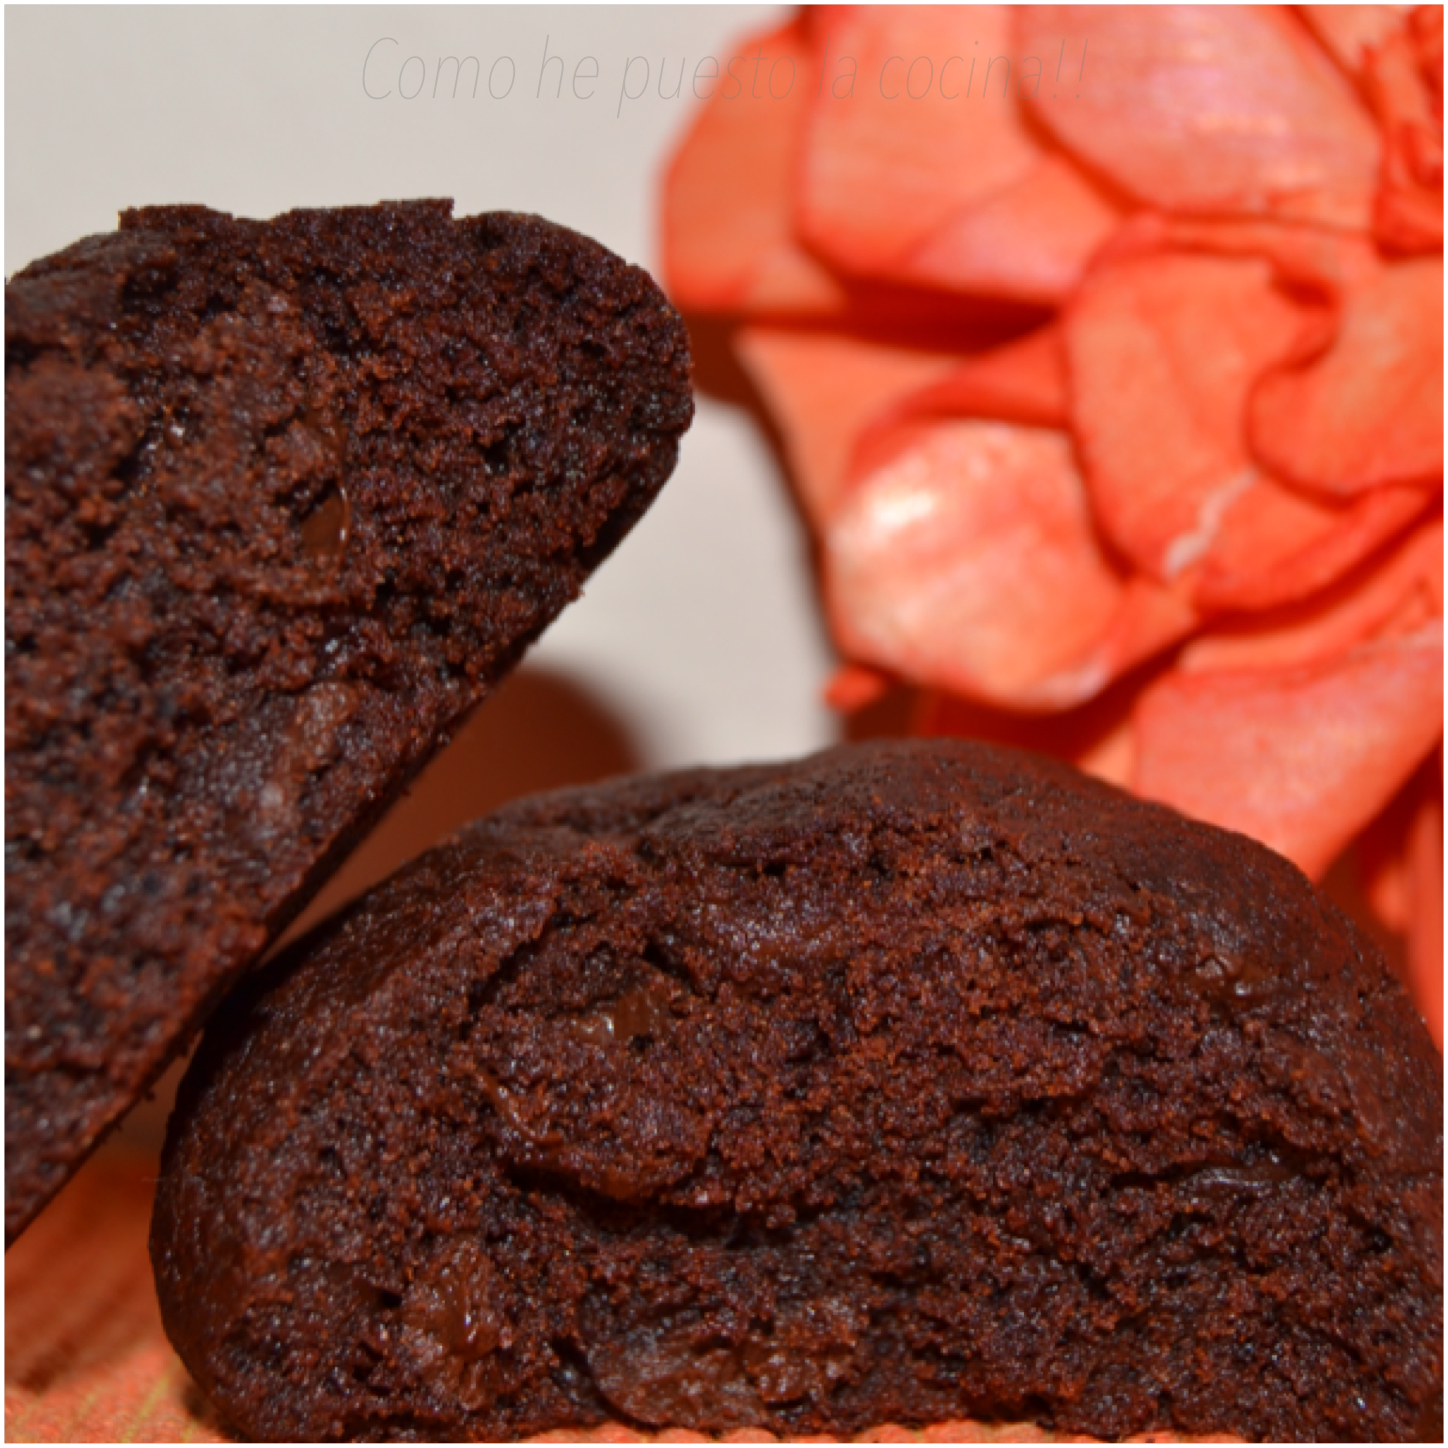 Baño Blanco Thermomix: !!: GALLETAS DE CHOCOLATE DE NIGELLA LAWSON (Tradicional y Thermomix